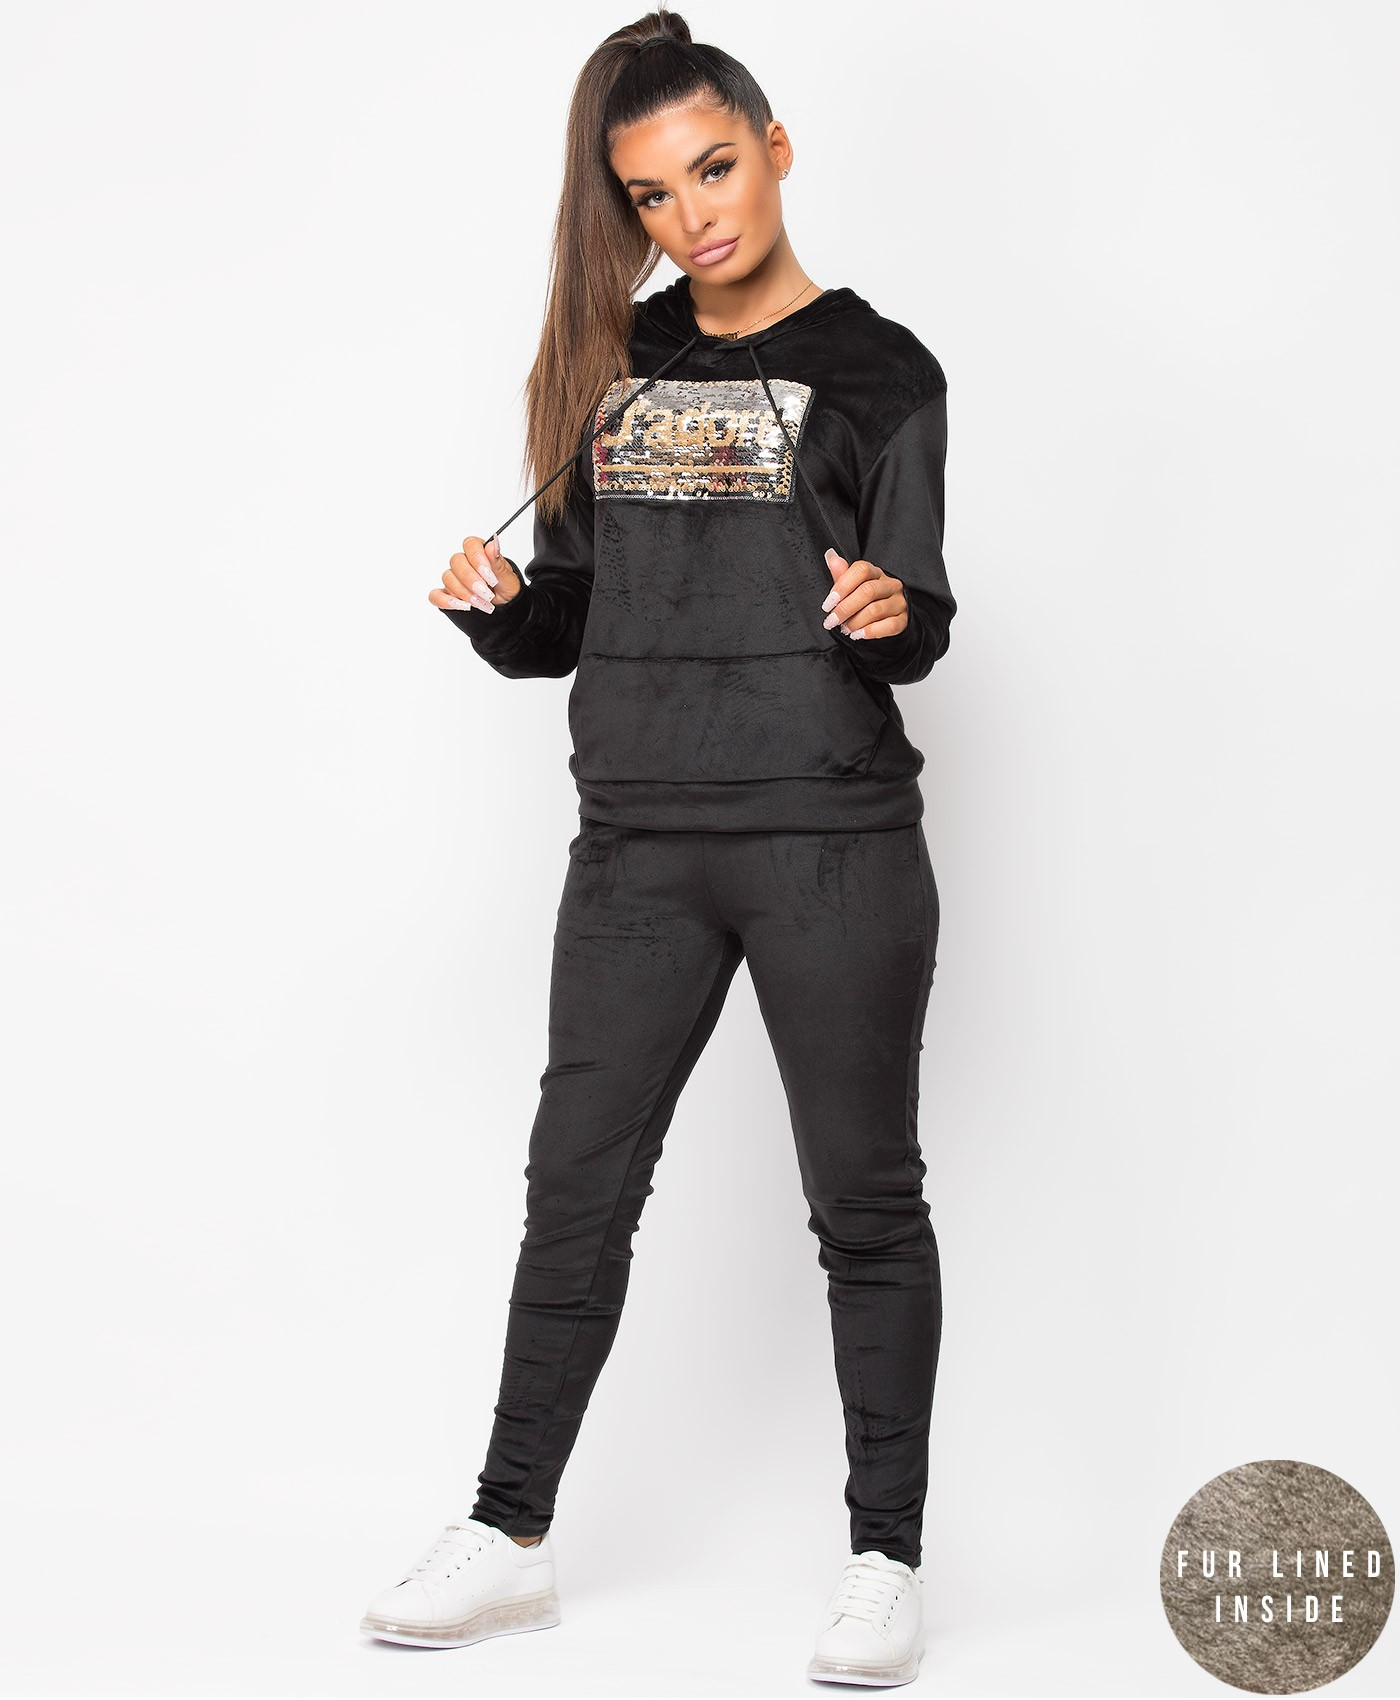 Black-Fur-Lined-Velvet-Velour-Jadore-Sequin-Tracksuit-Loungwear-Set-1